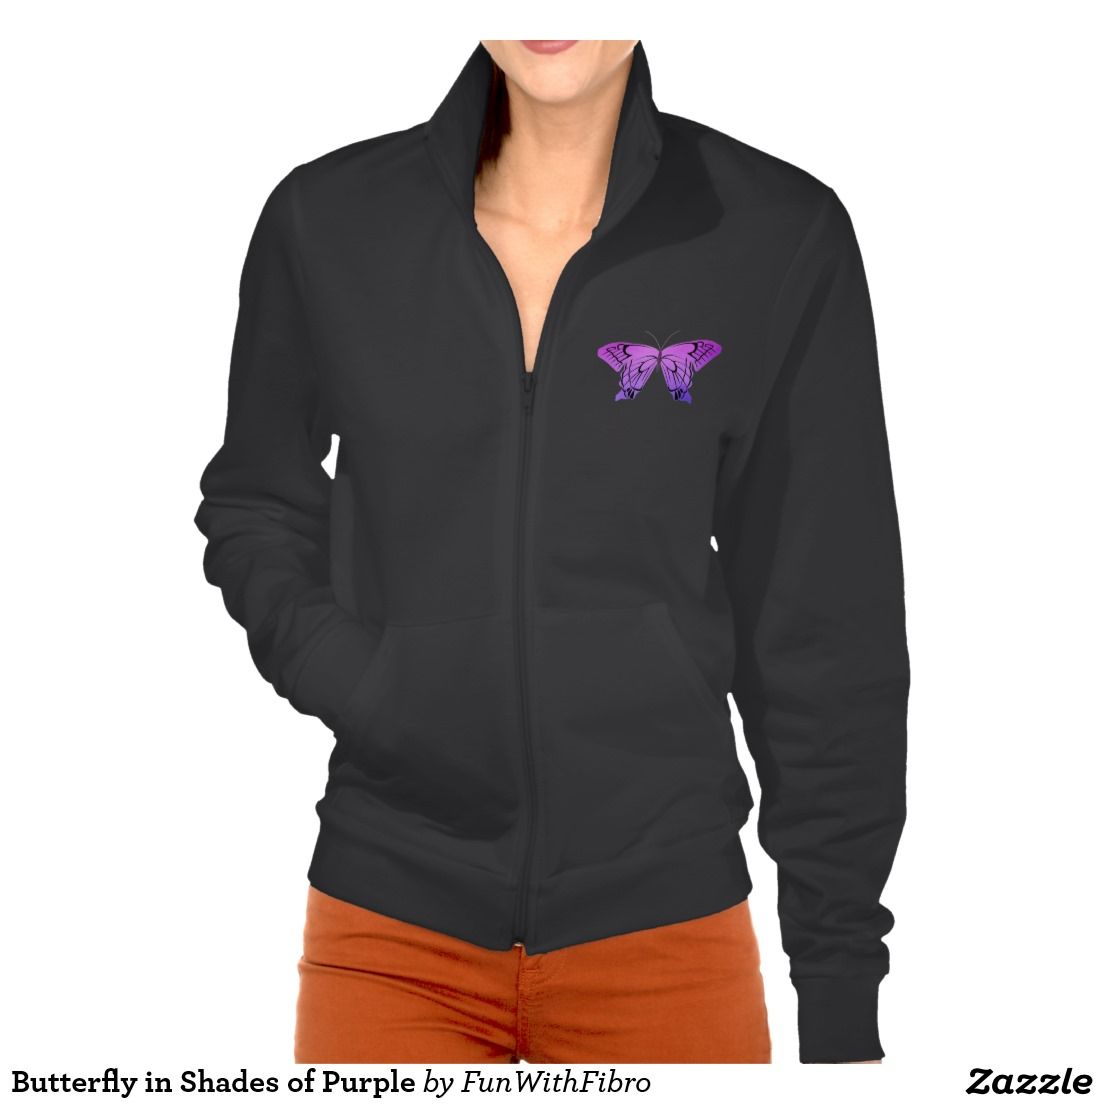 Butterfly in shades of purple jackets what people have bought from